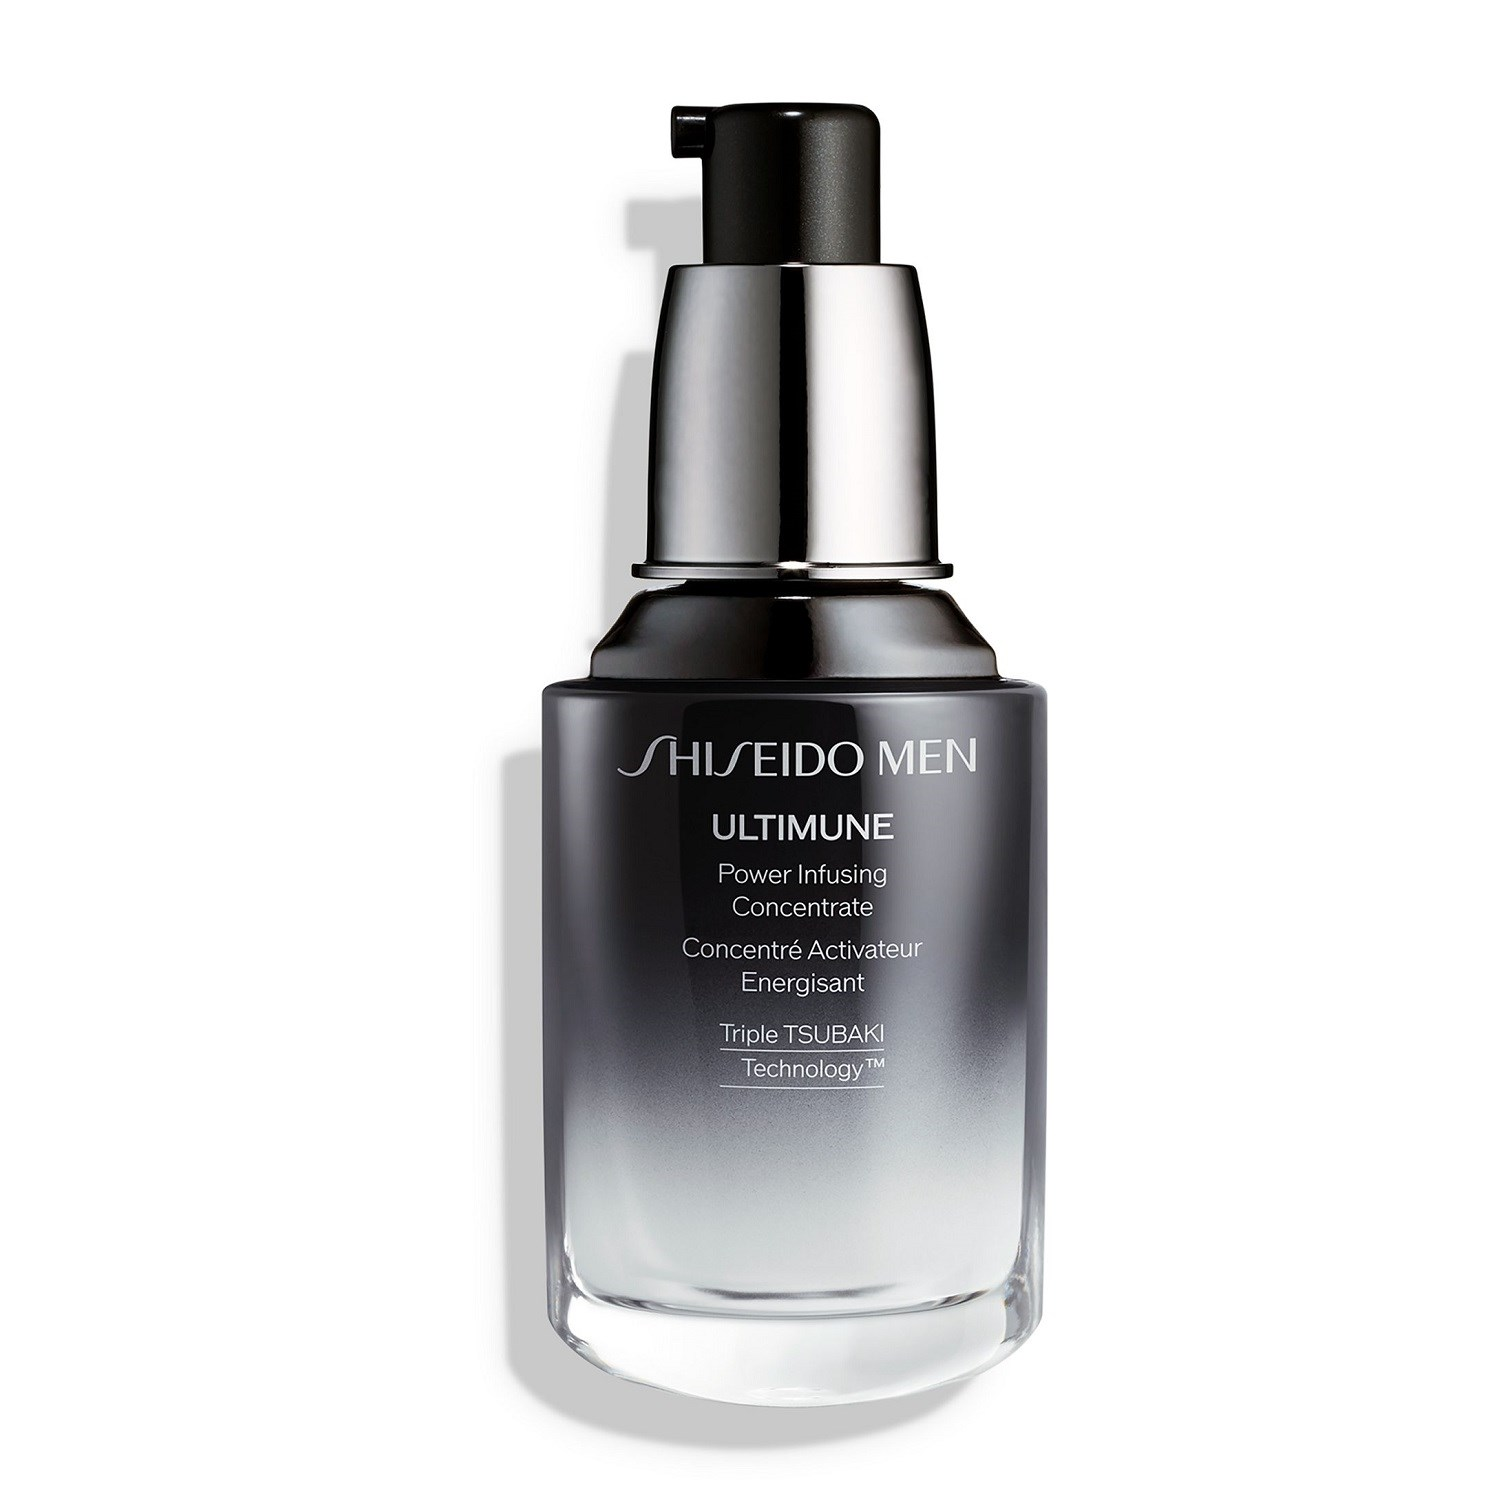 MEN ULTIMUNE POWER INFUSING CONCENTRATE 3